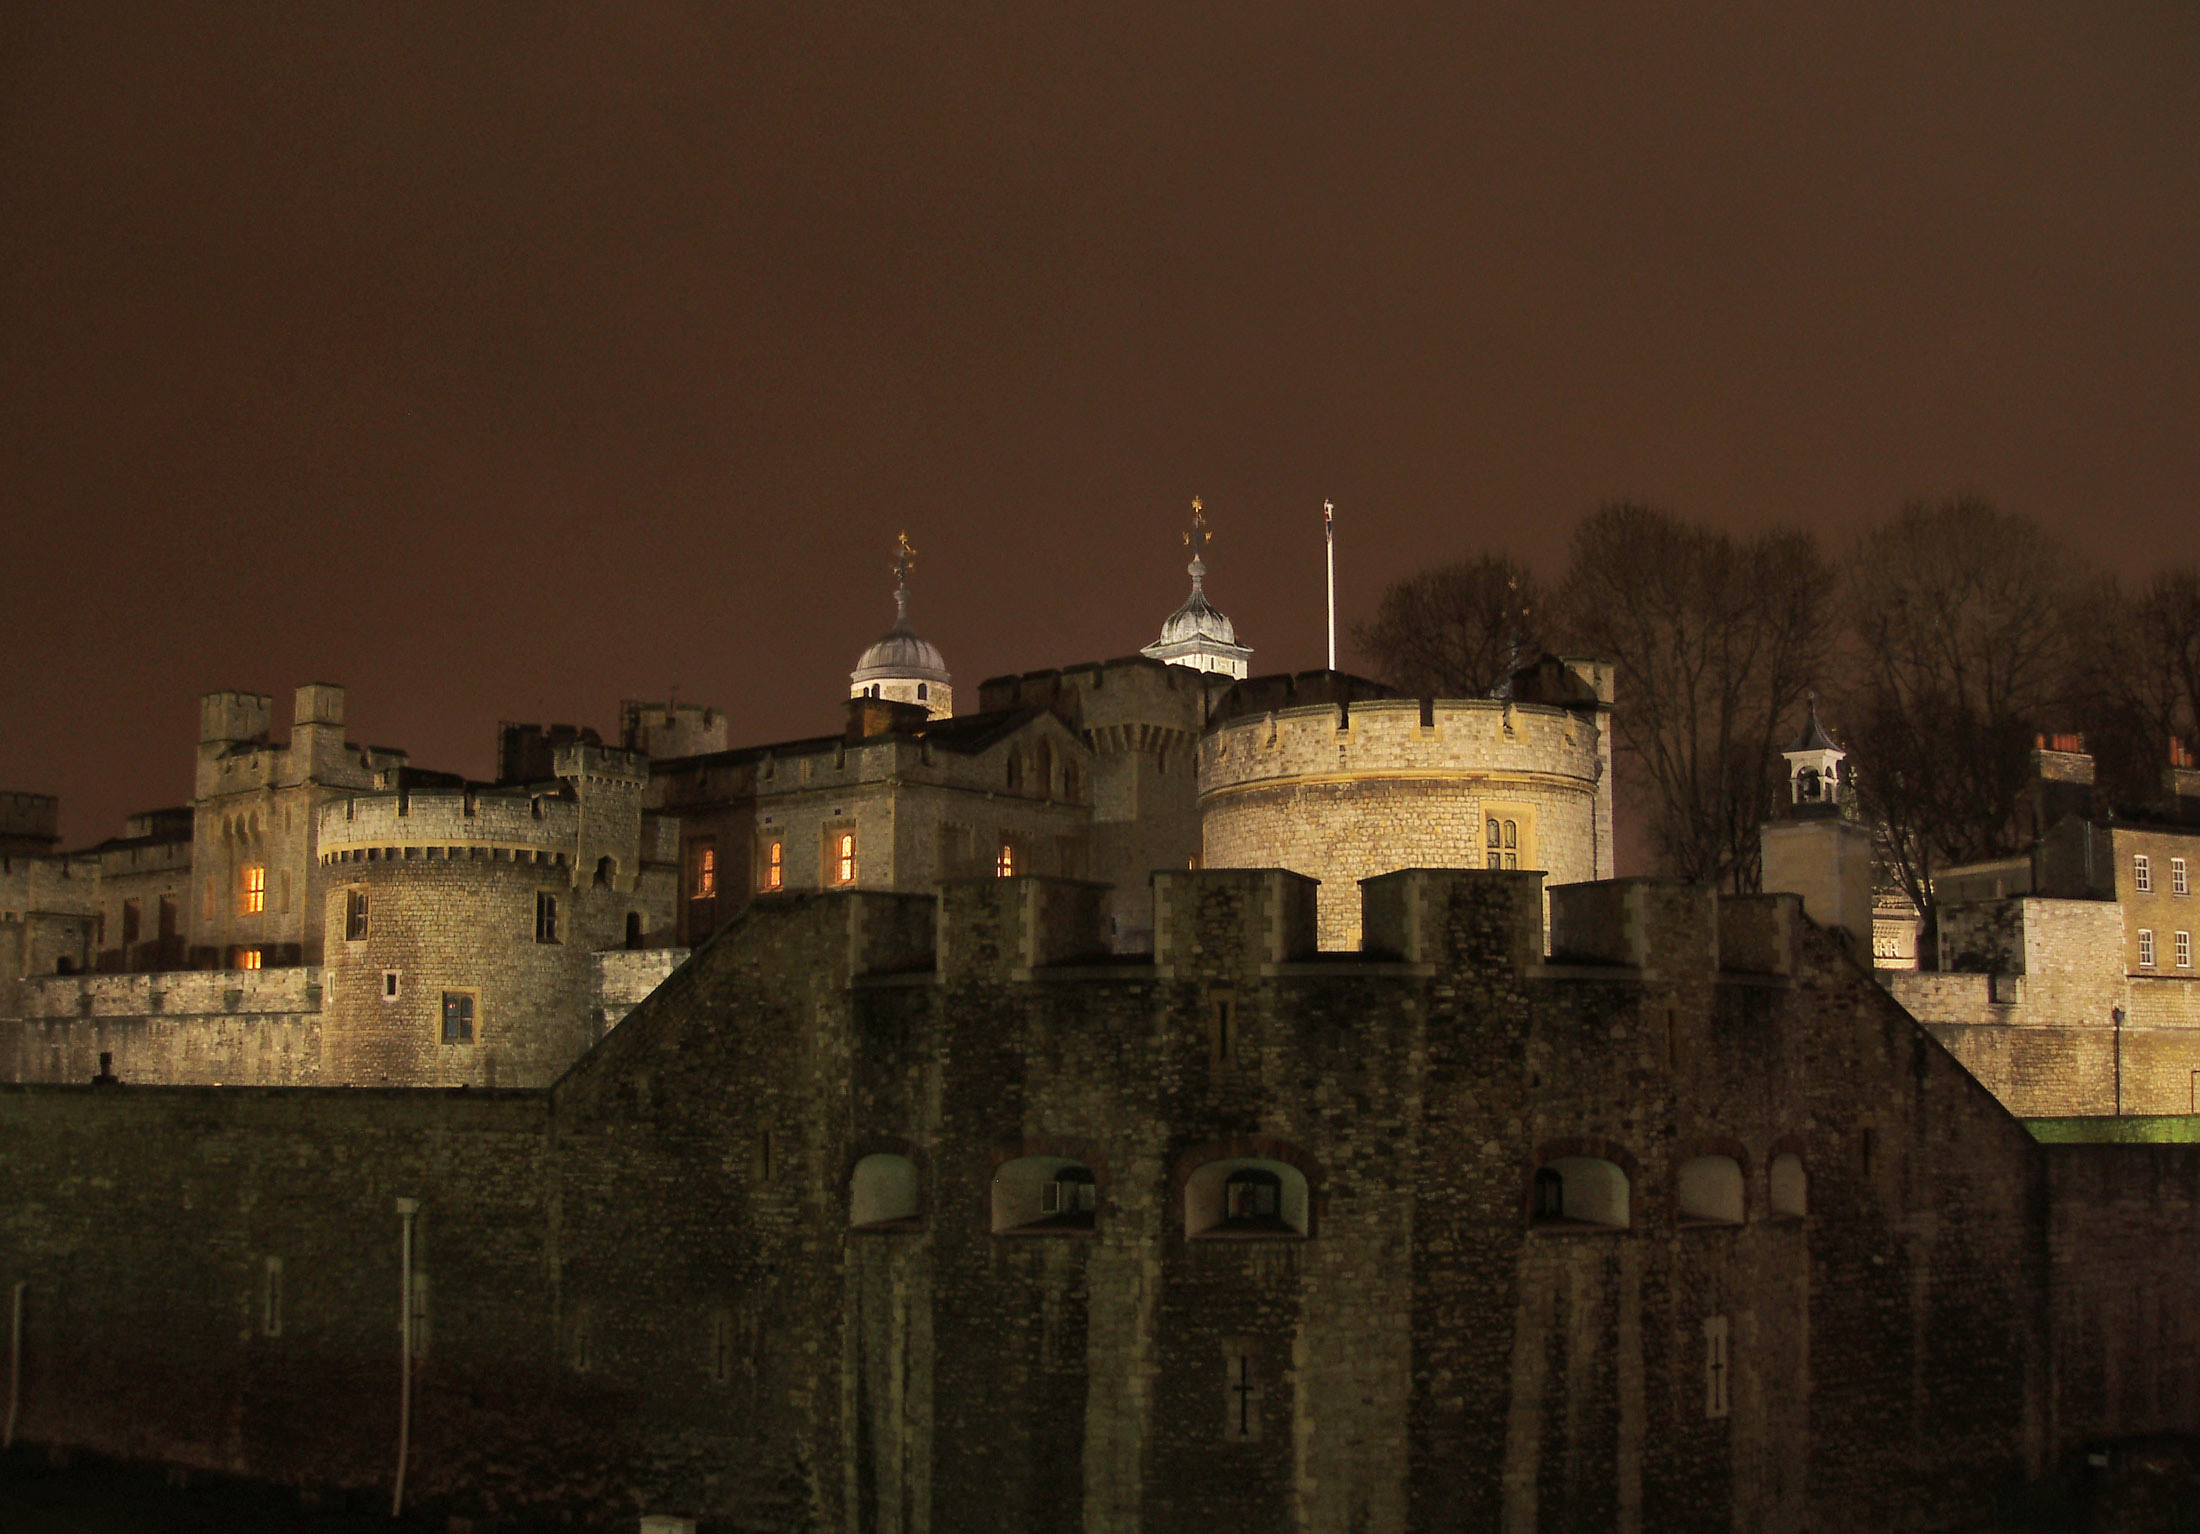 Night view of the iconic landmark Gothic structure of the Tower of London illuminated by lights showing the detail of the round towers